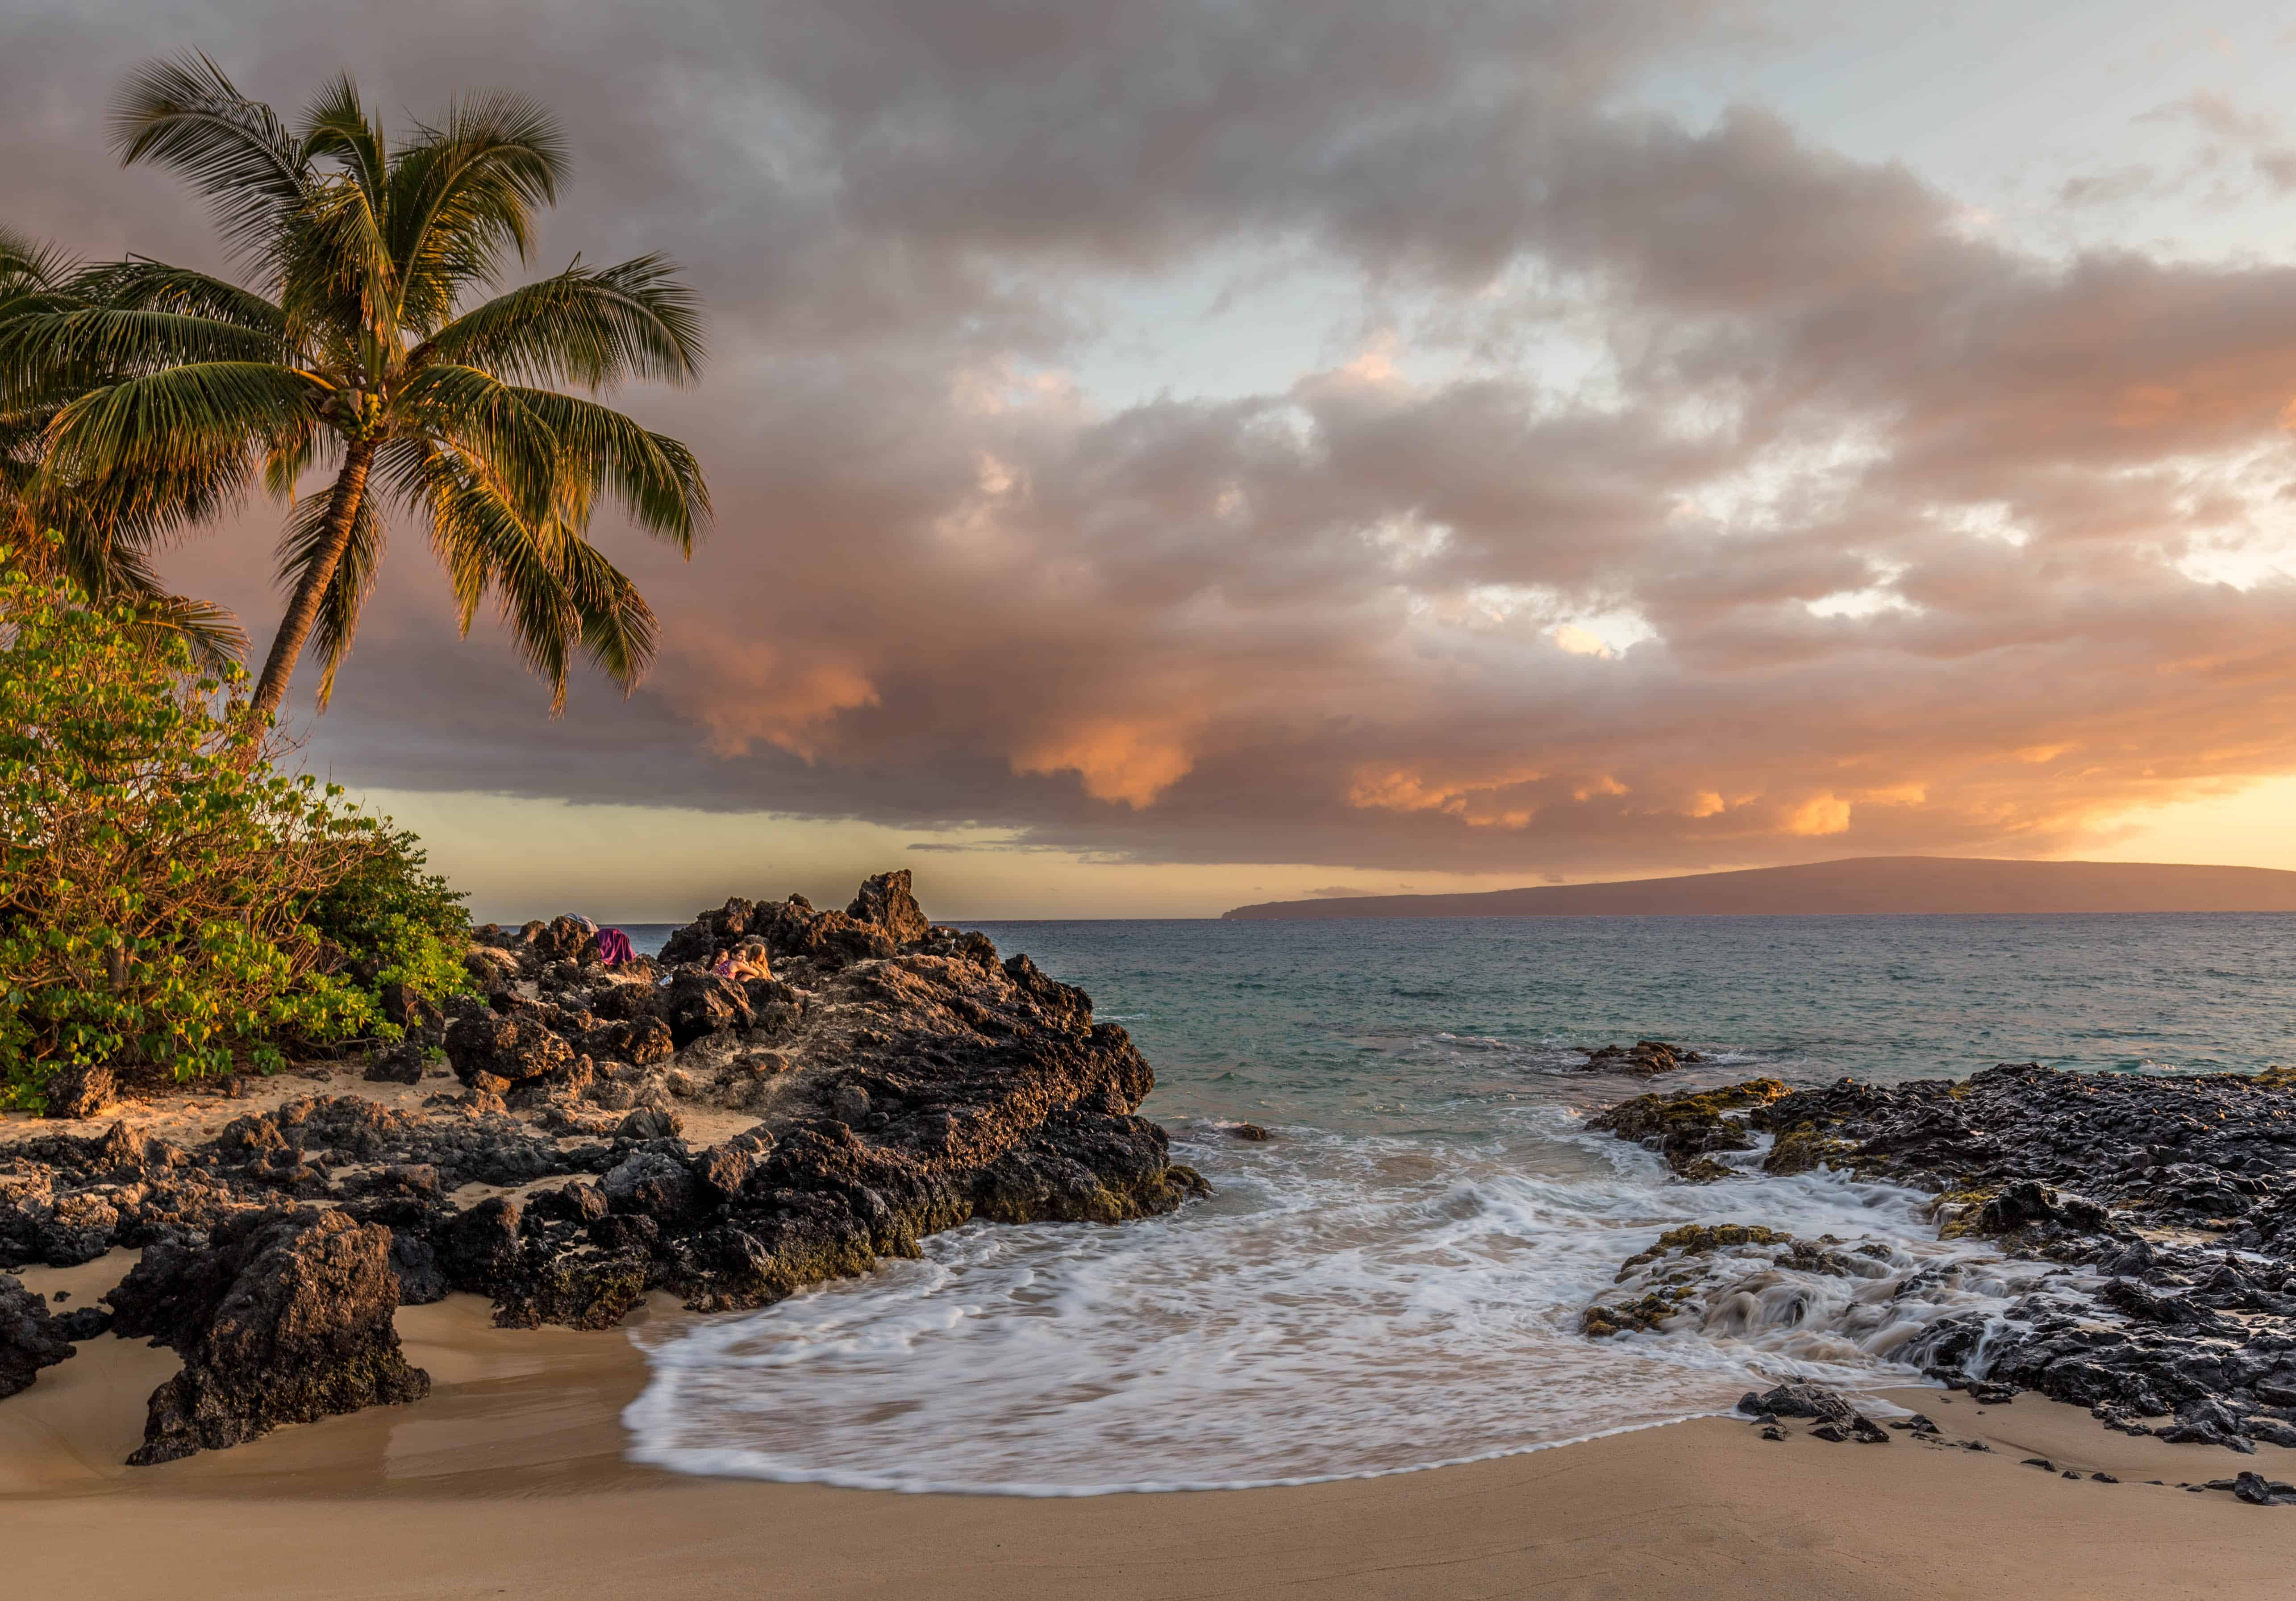 Beach scene with palm trees and rocks.